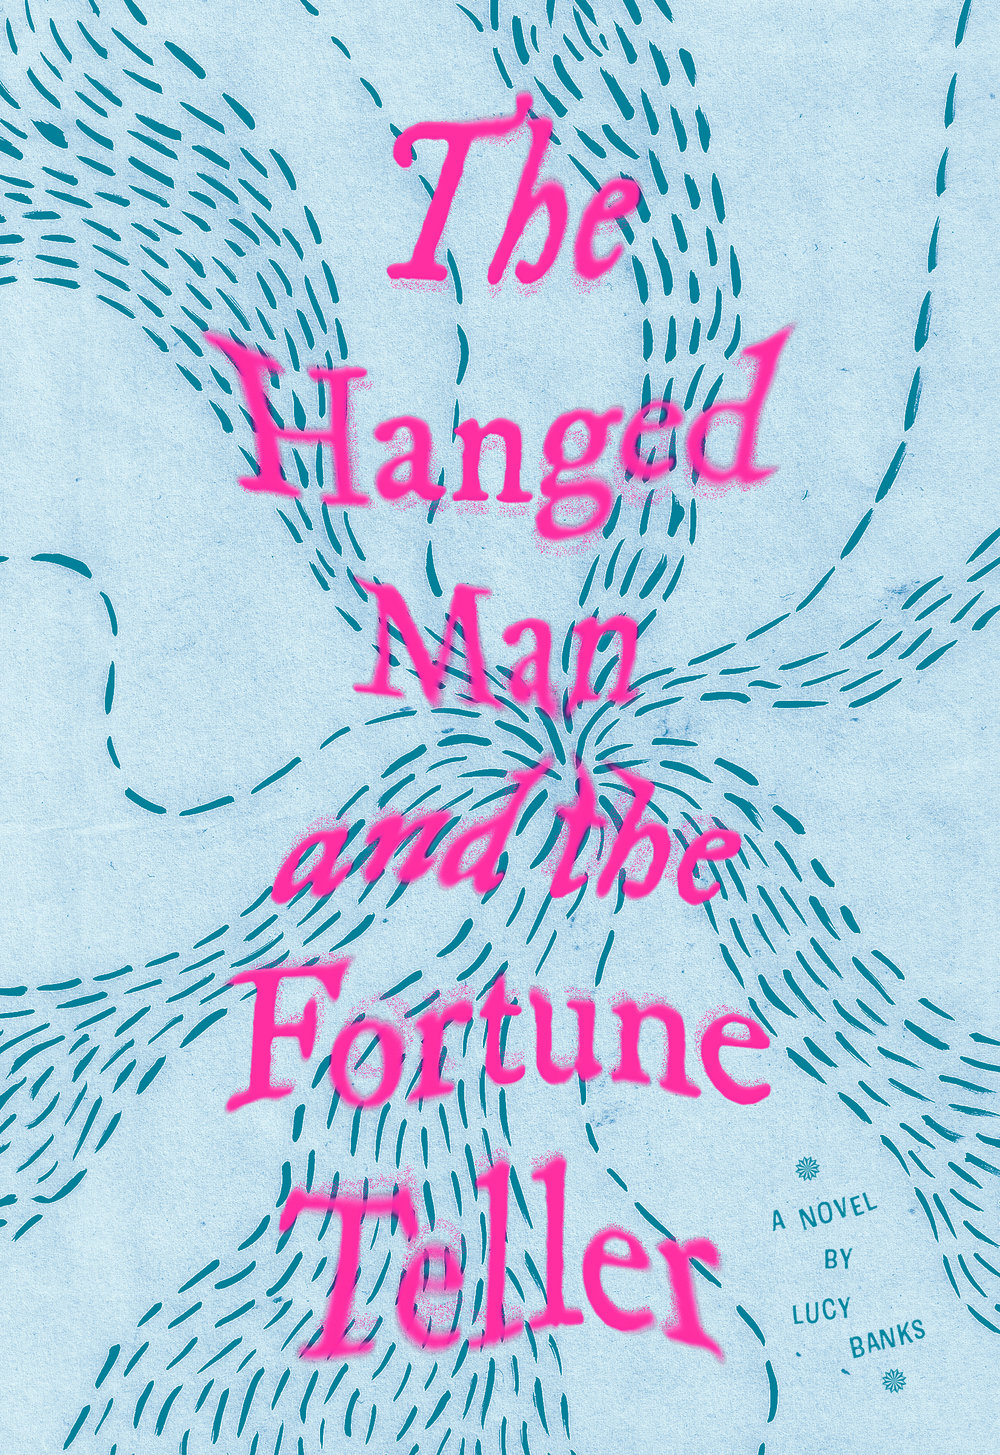 The Hanged Man and the Fortune Teller book cover. Title in distorted pink serif font against a light blue background with an illustrated wave pattern.